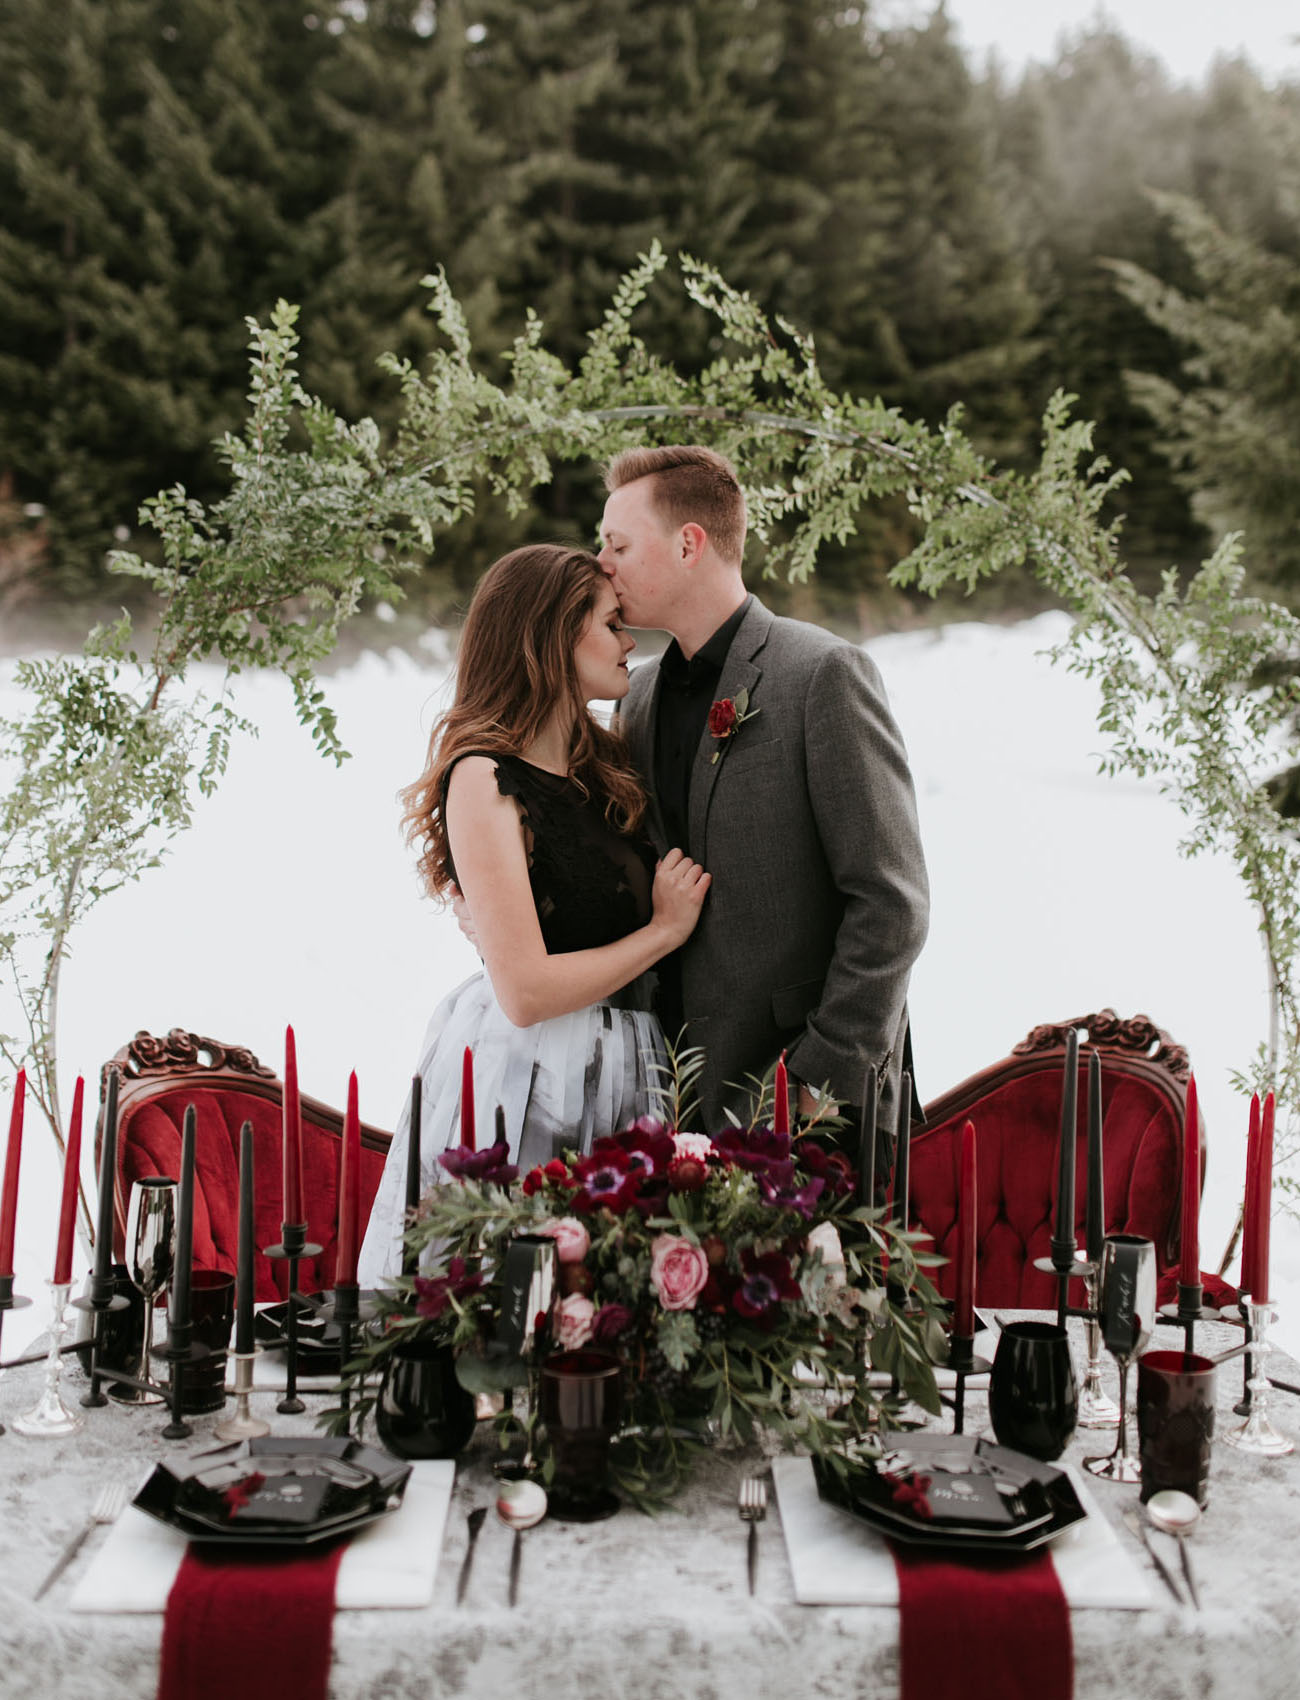 Black glasses, black and red candles, lush florals, black plates and touches of geometry made the wedding decor luxurious